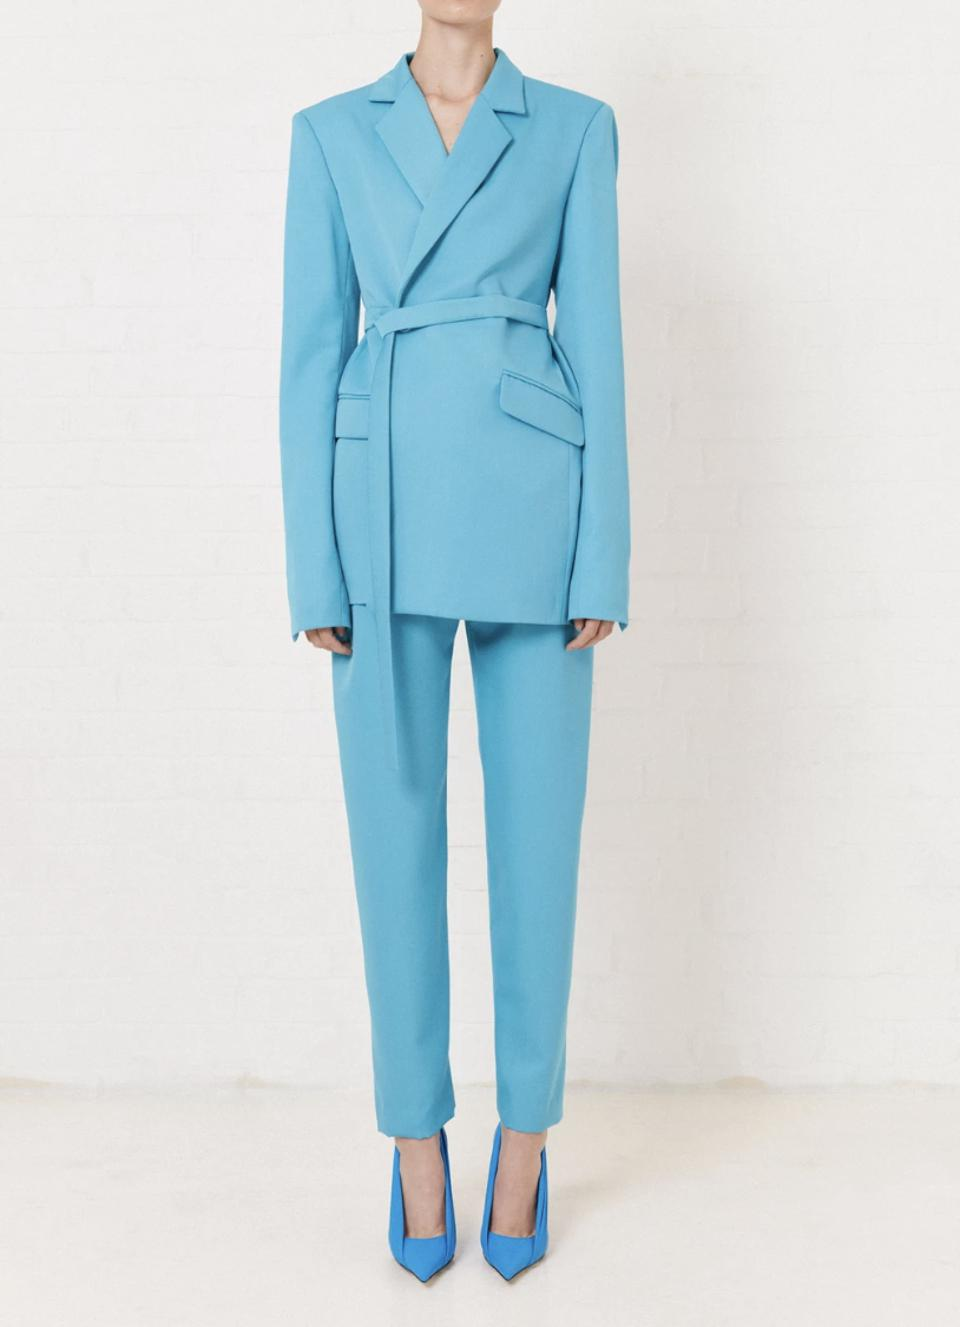 House of Holland Turquoise Tailored Suit